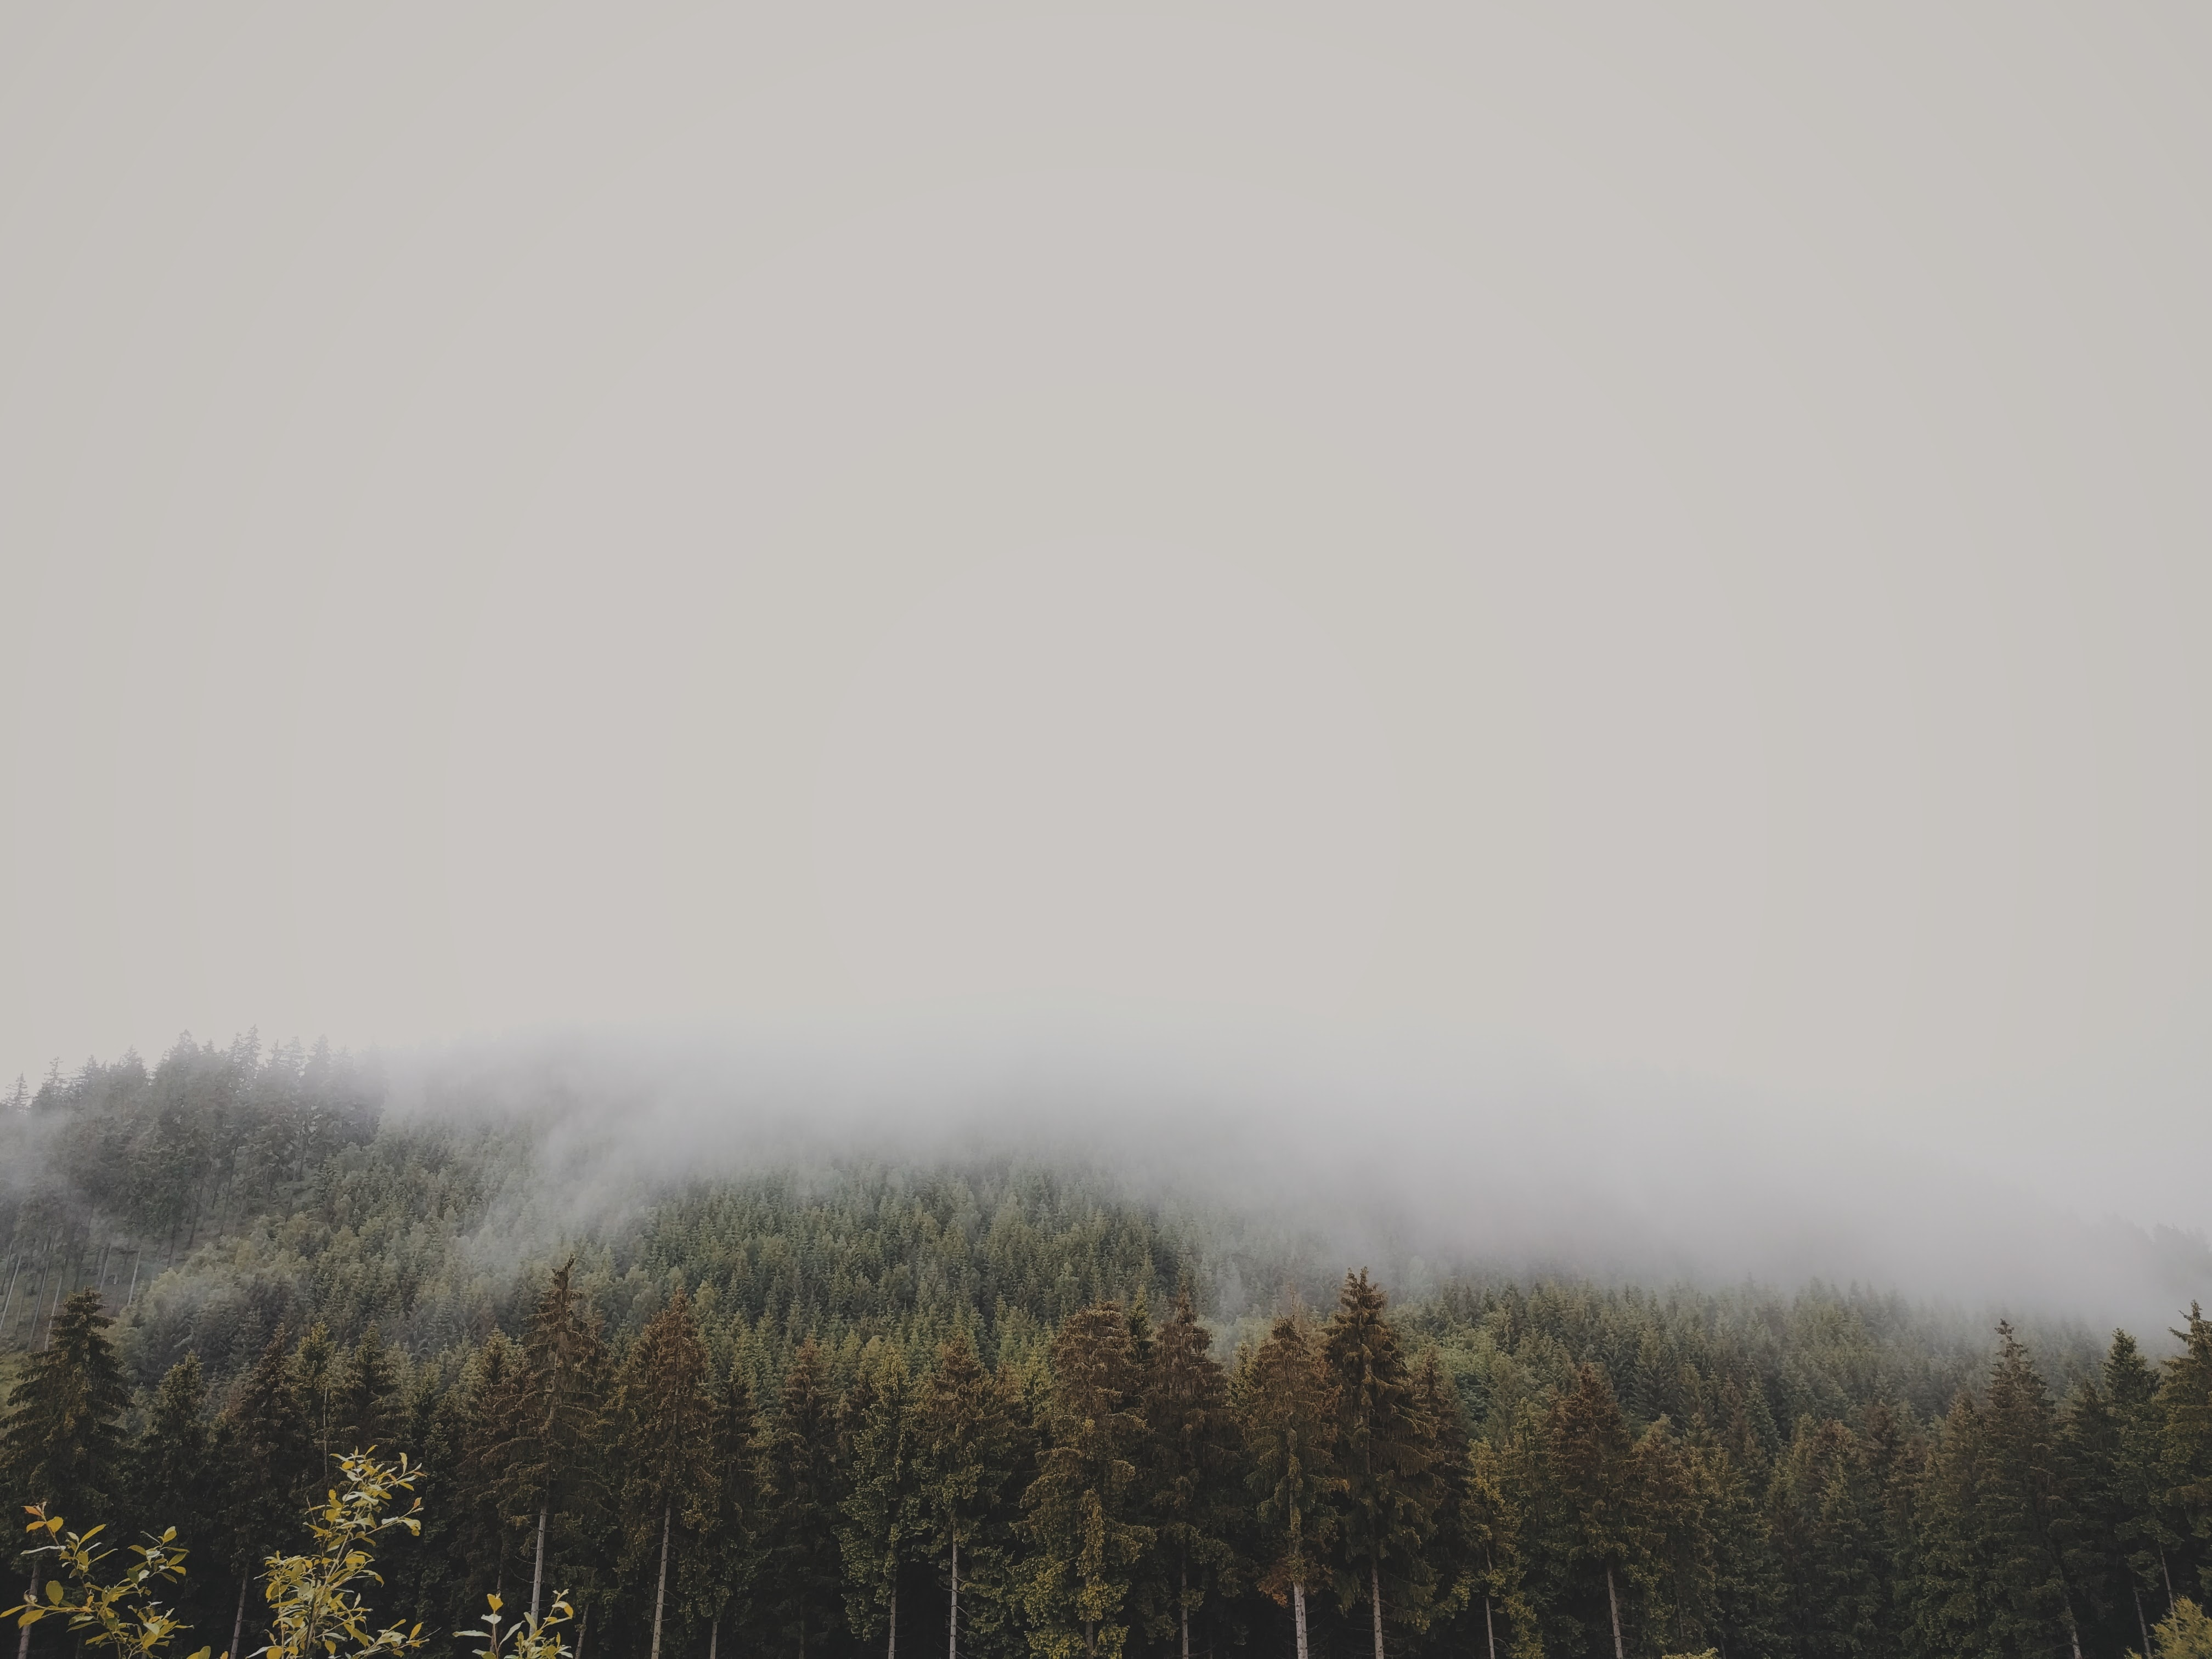 A thick fog descending from a wooded slope